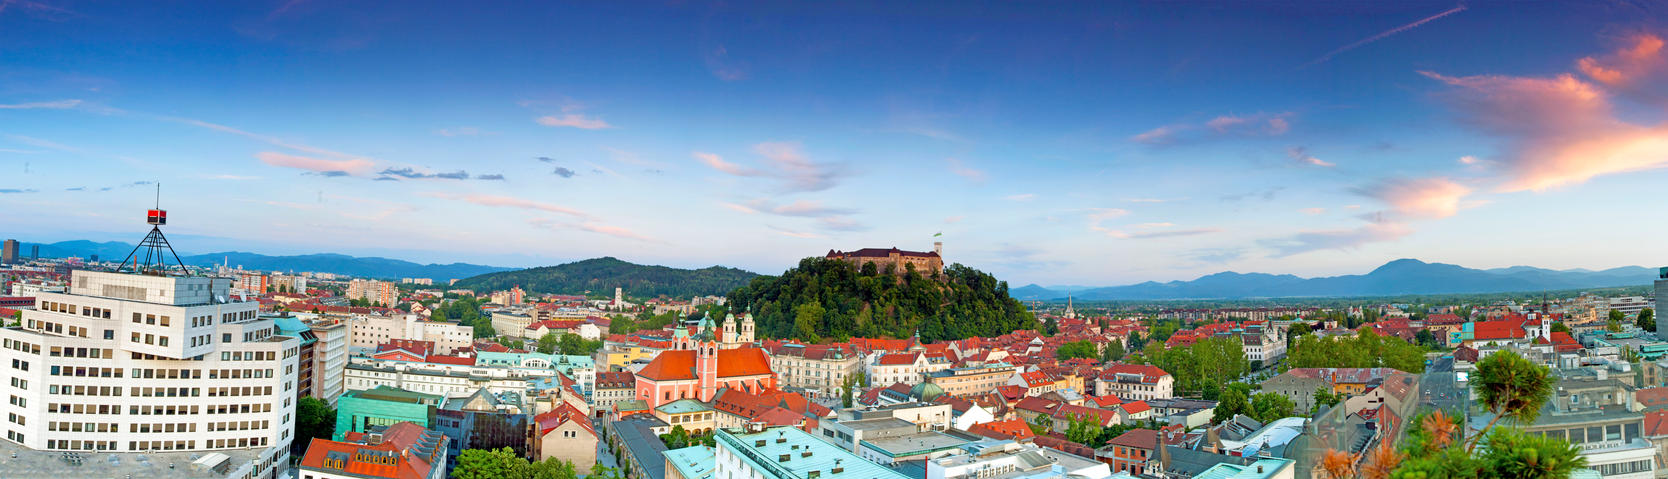 Ljubljana, panoramic view by luka567